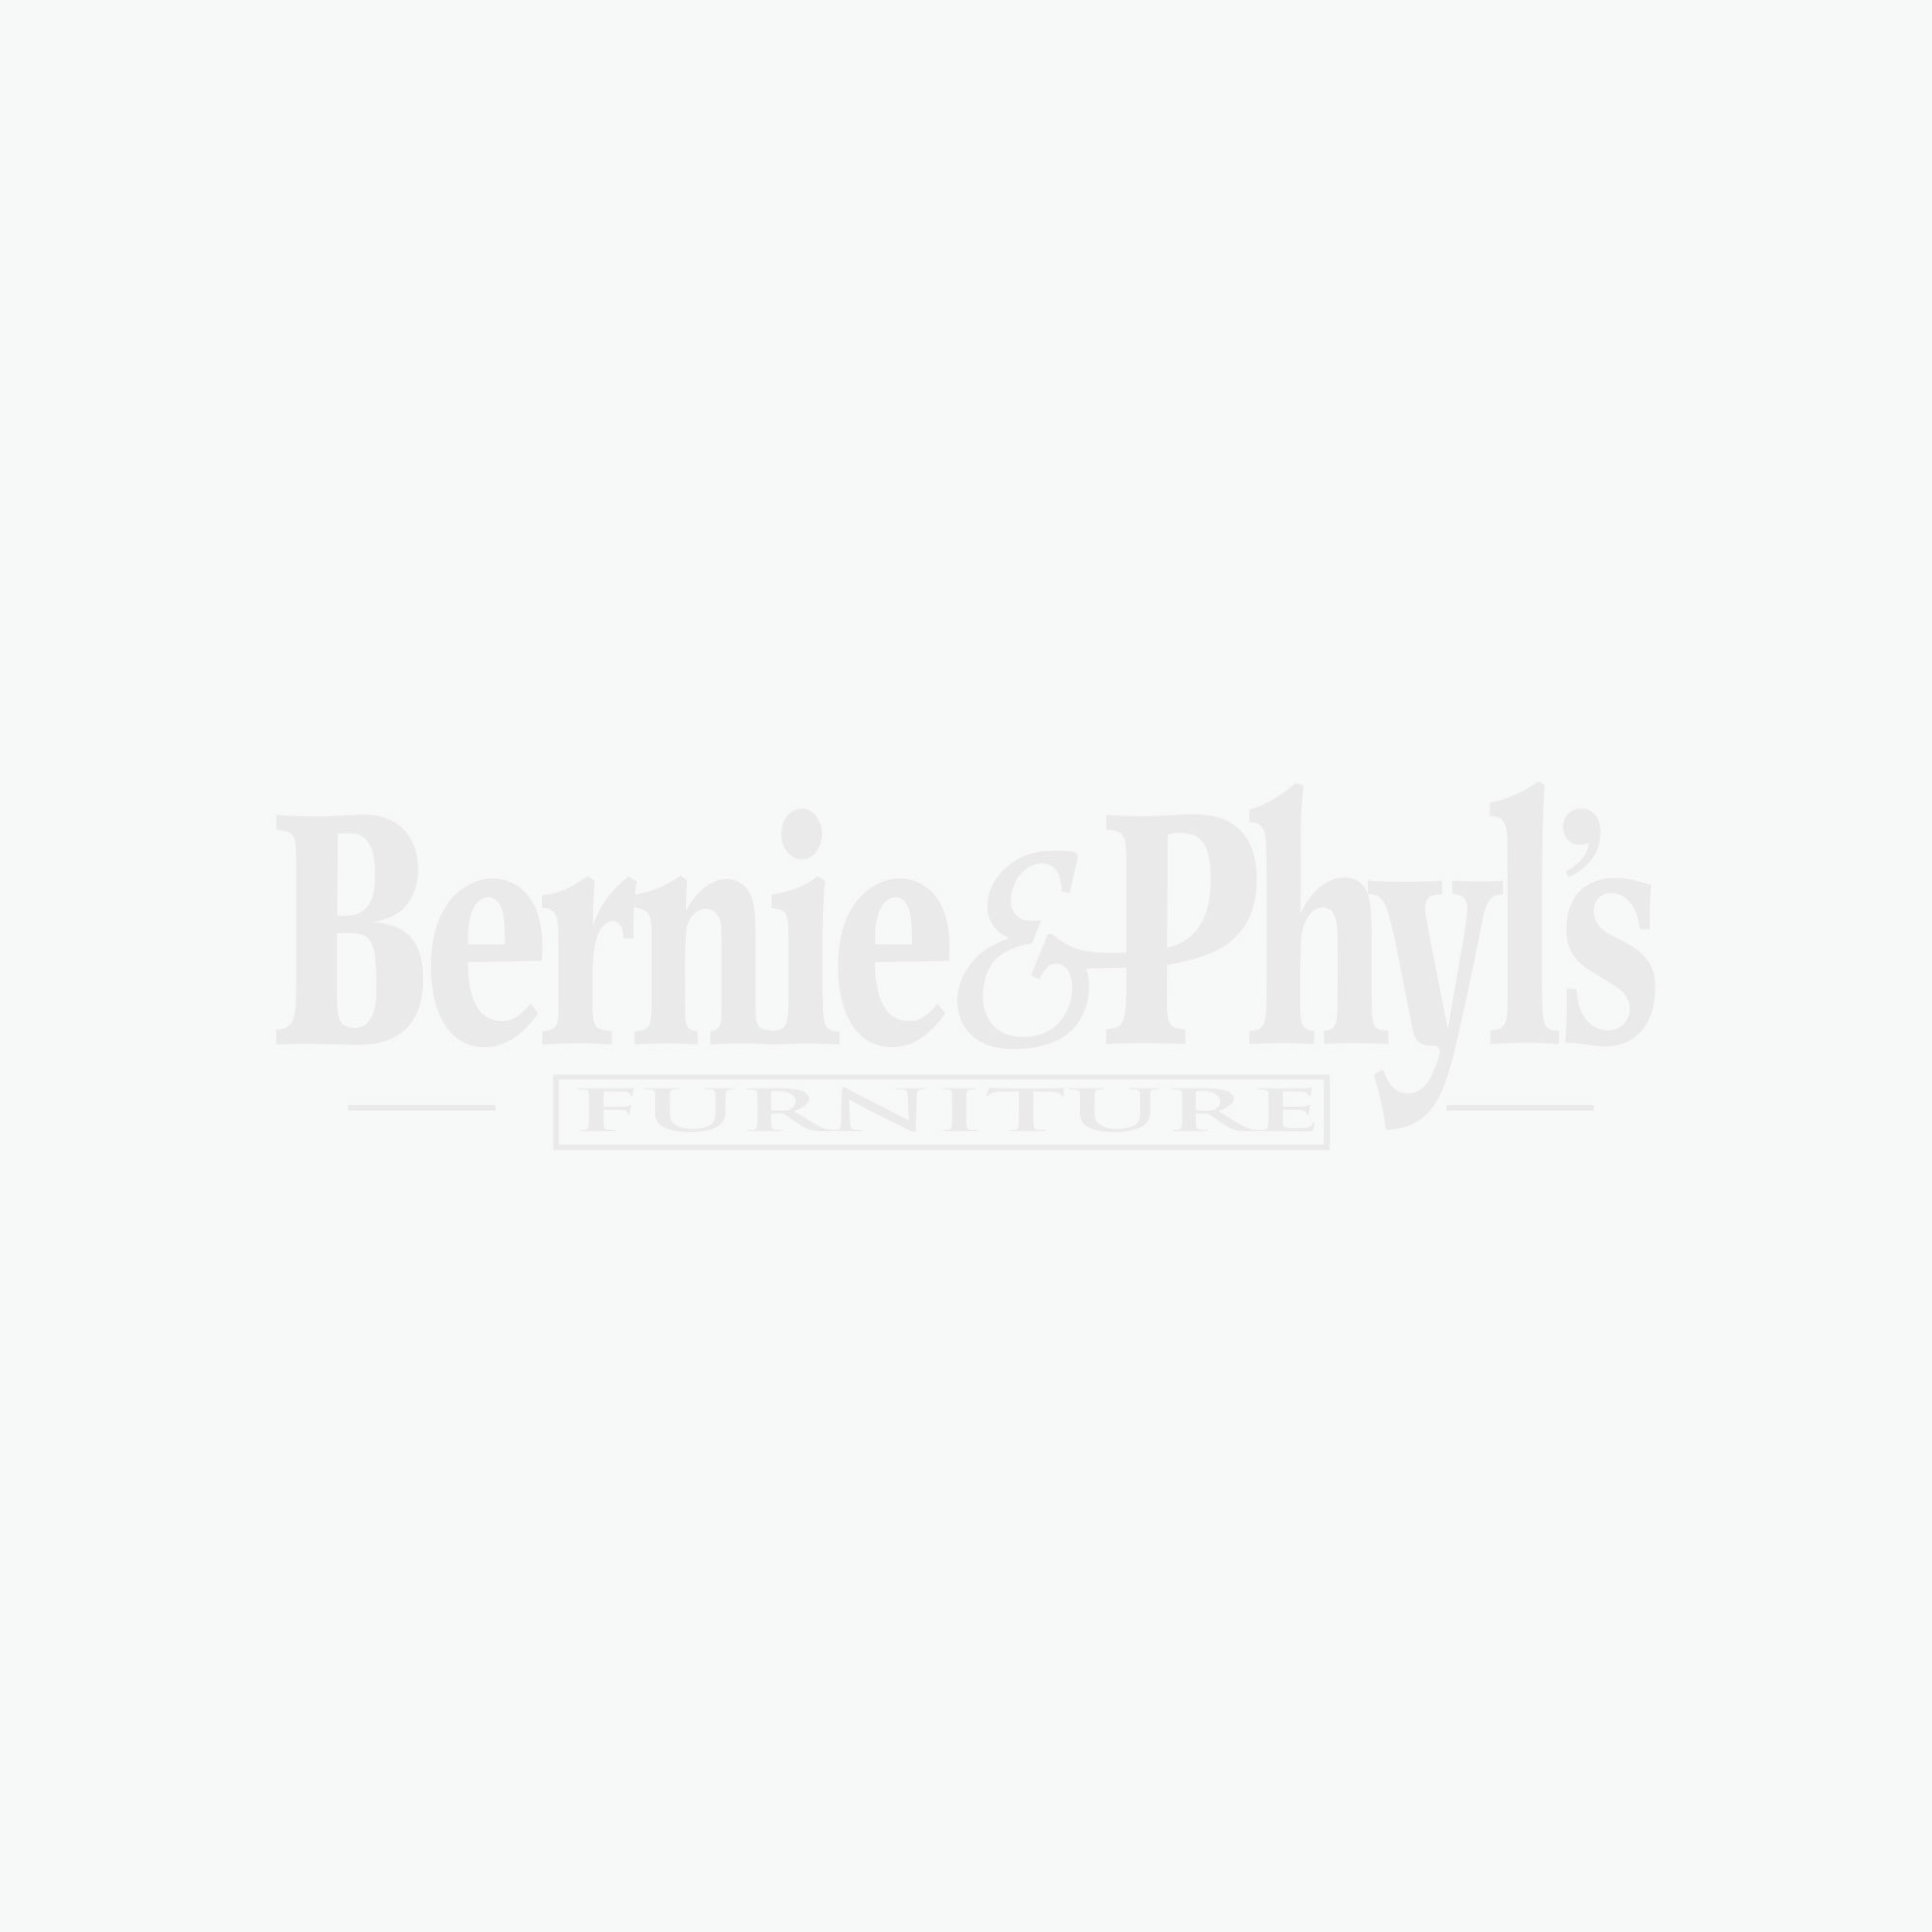 BunkHouse Twin over Full Bunk Bed